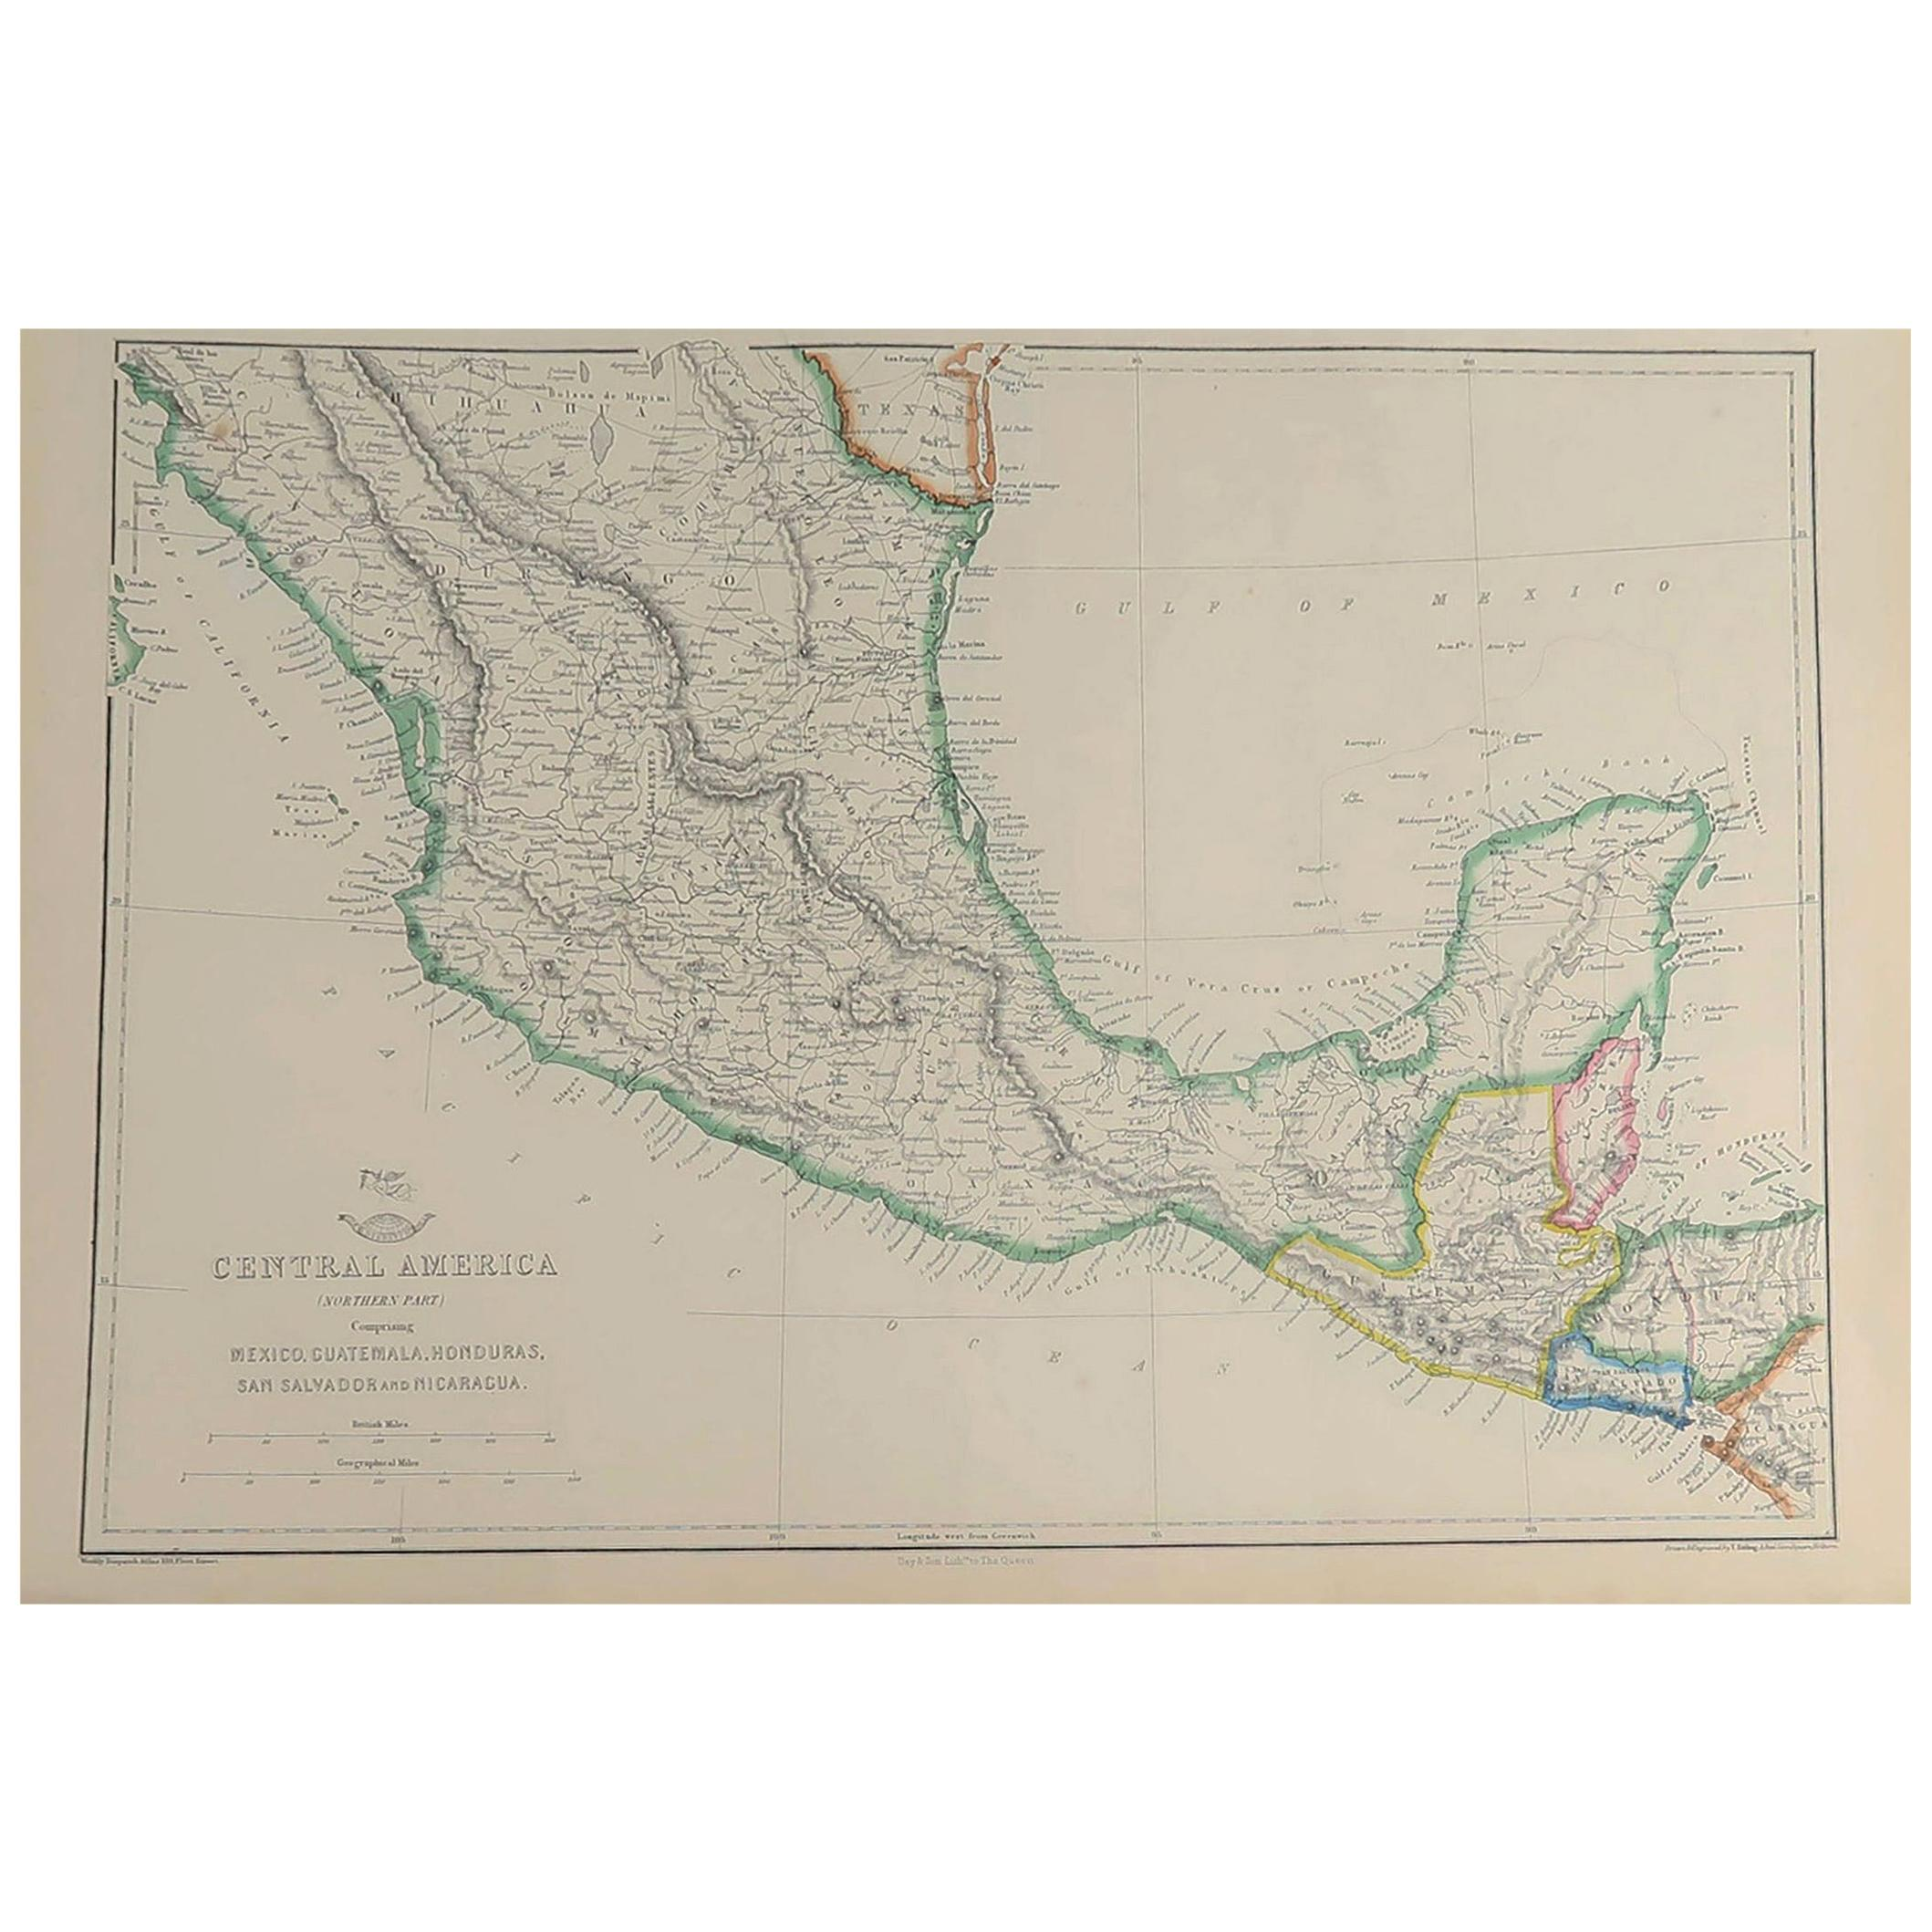 Large Original Antique Map of Mexico, 1861